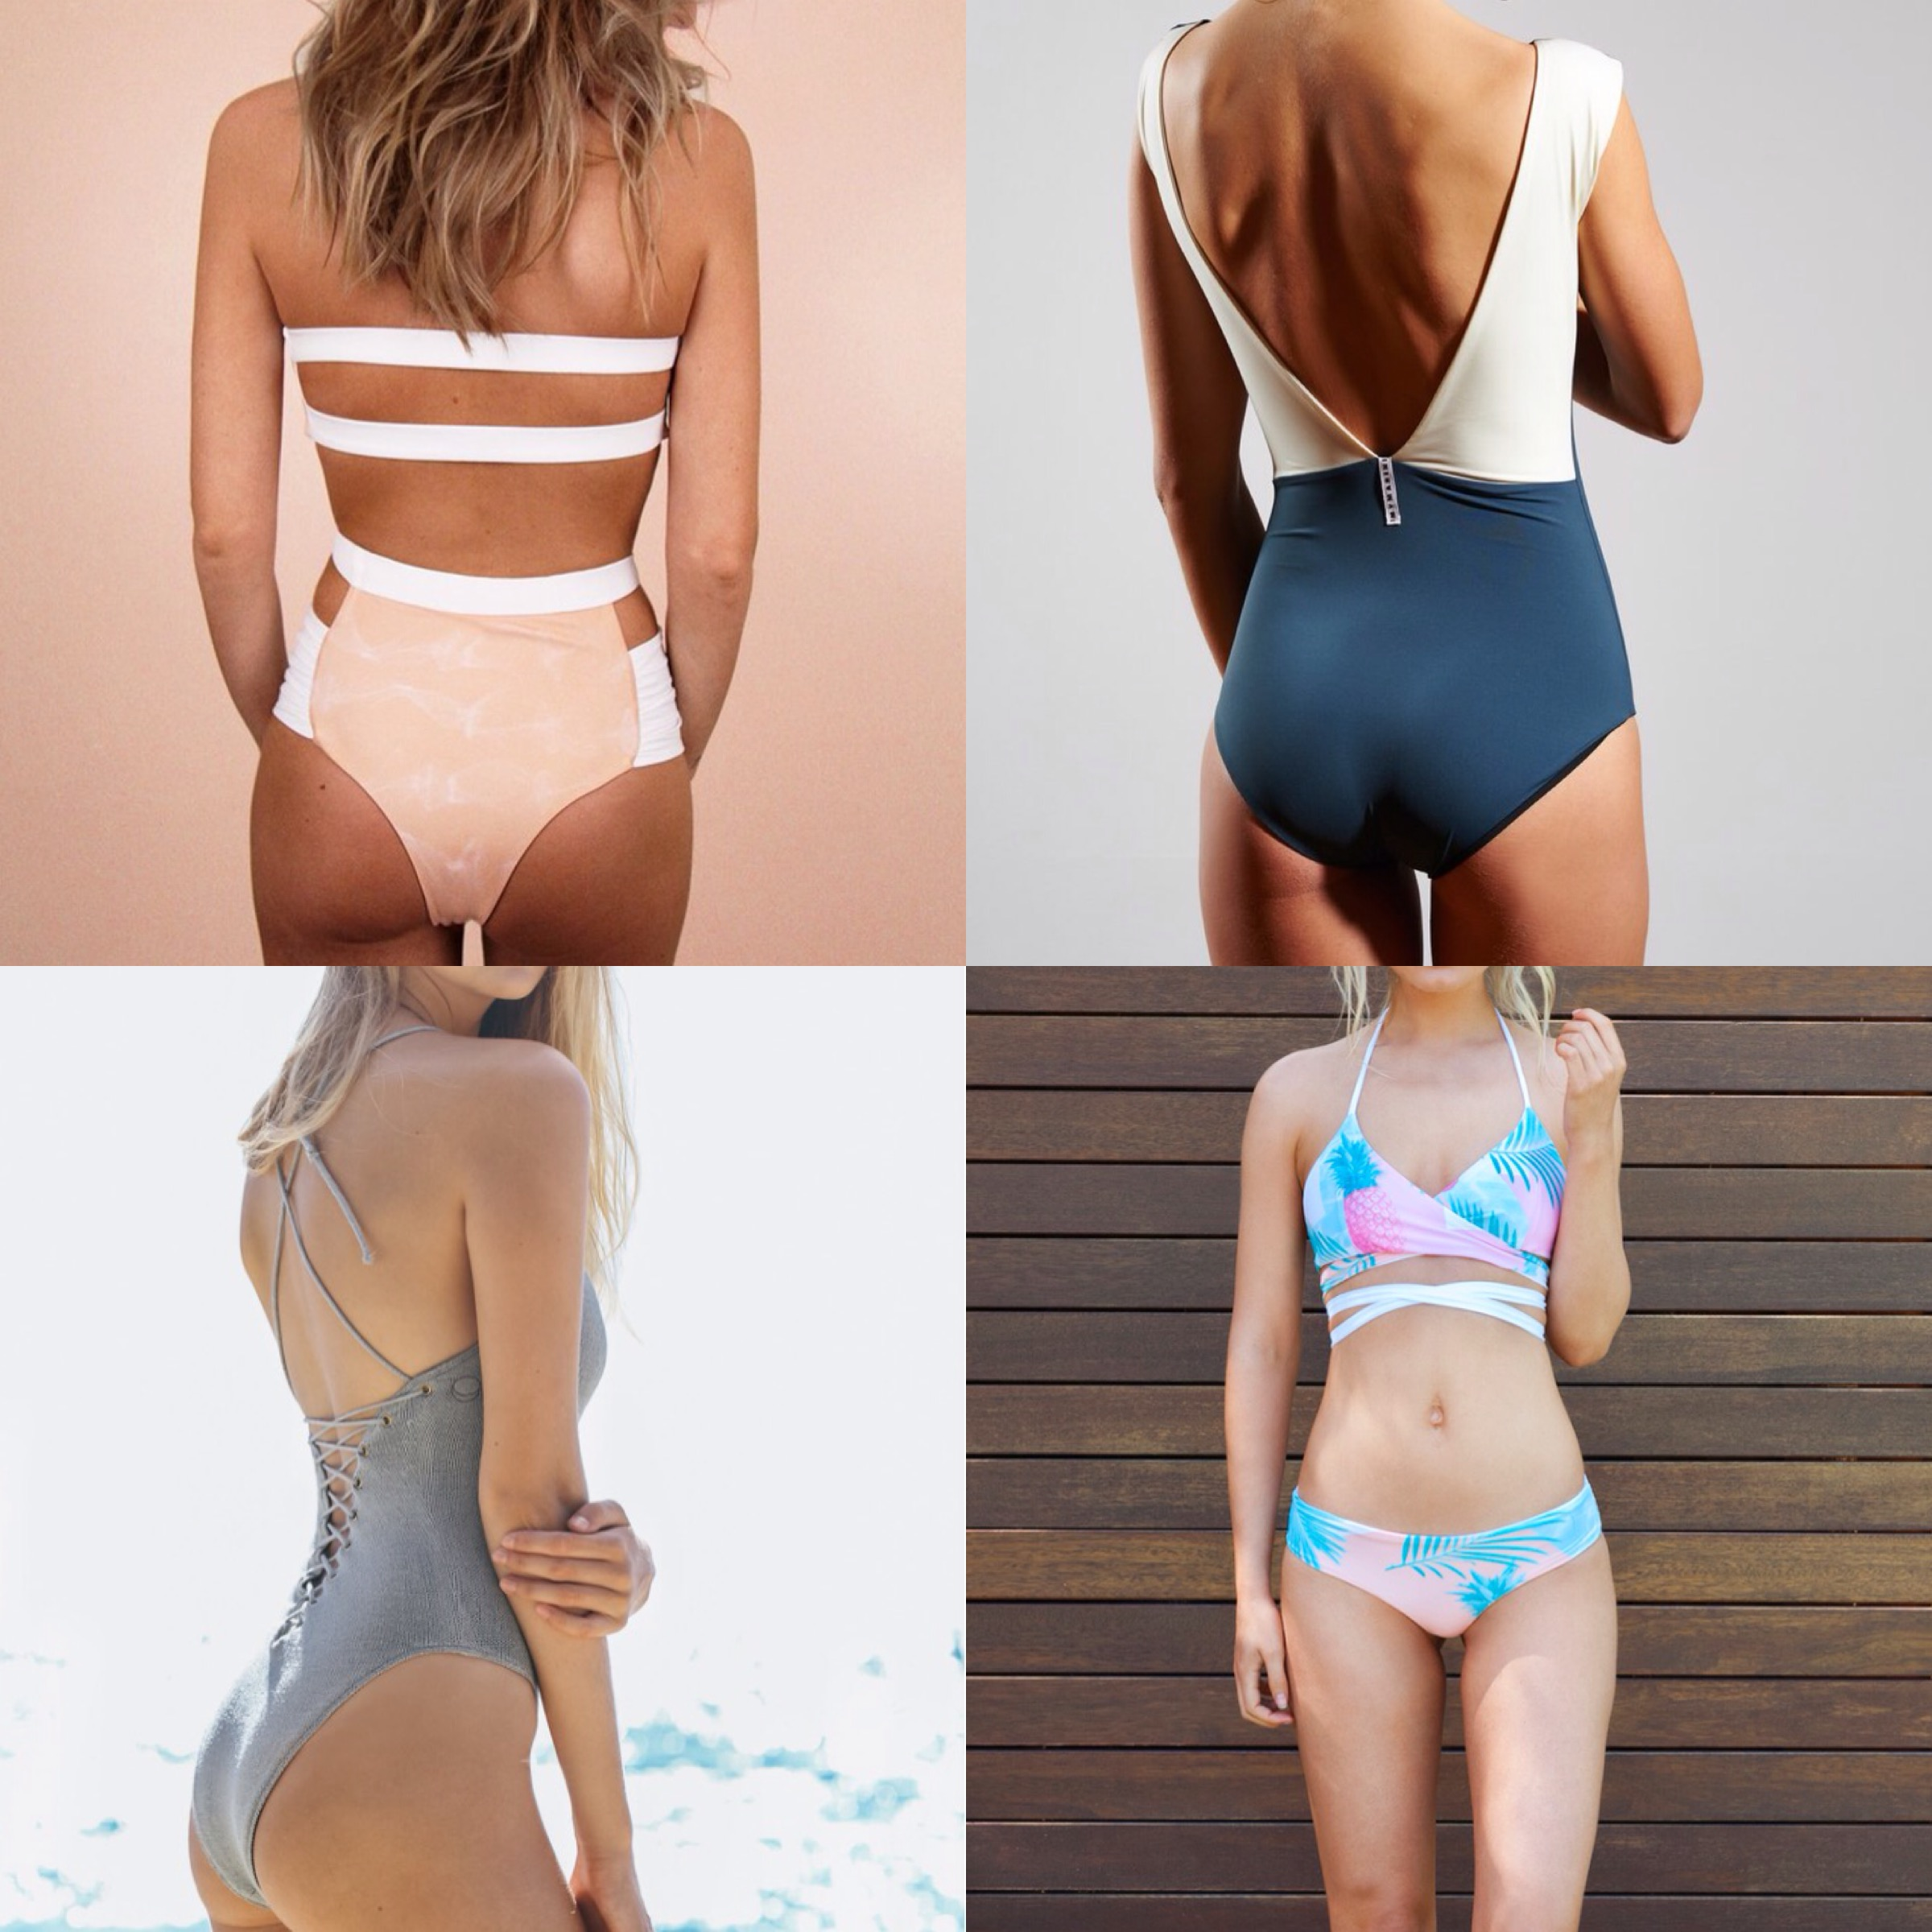 91bc4952ac5 Top left: Bikini by Amara, a brand manufacturing its fabric in a green  energy facility, creating bikinis with quality and sustainability in mind.